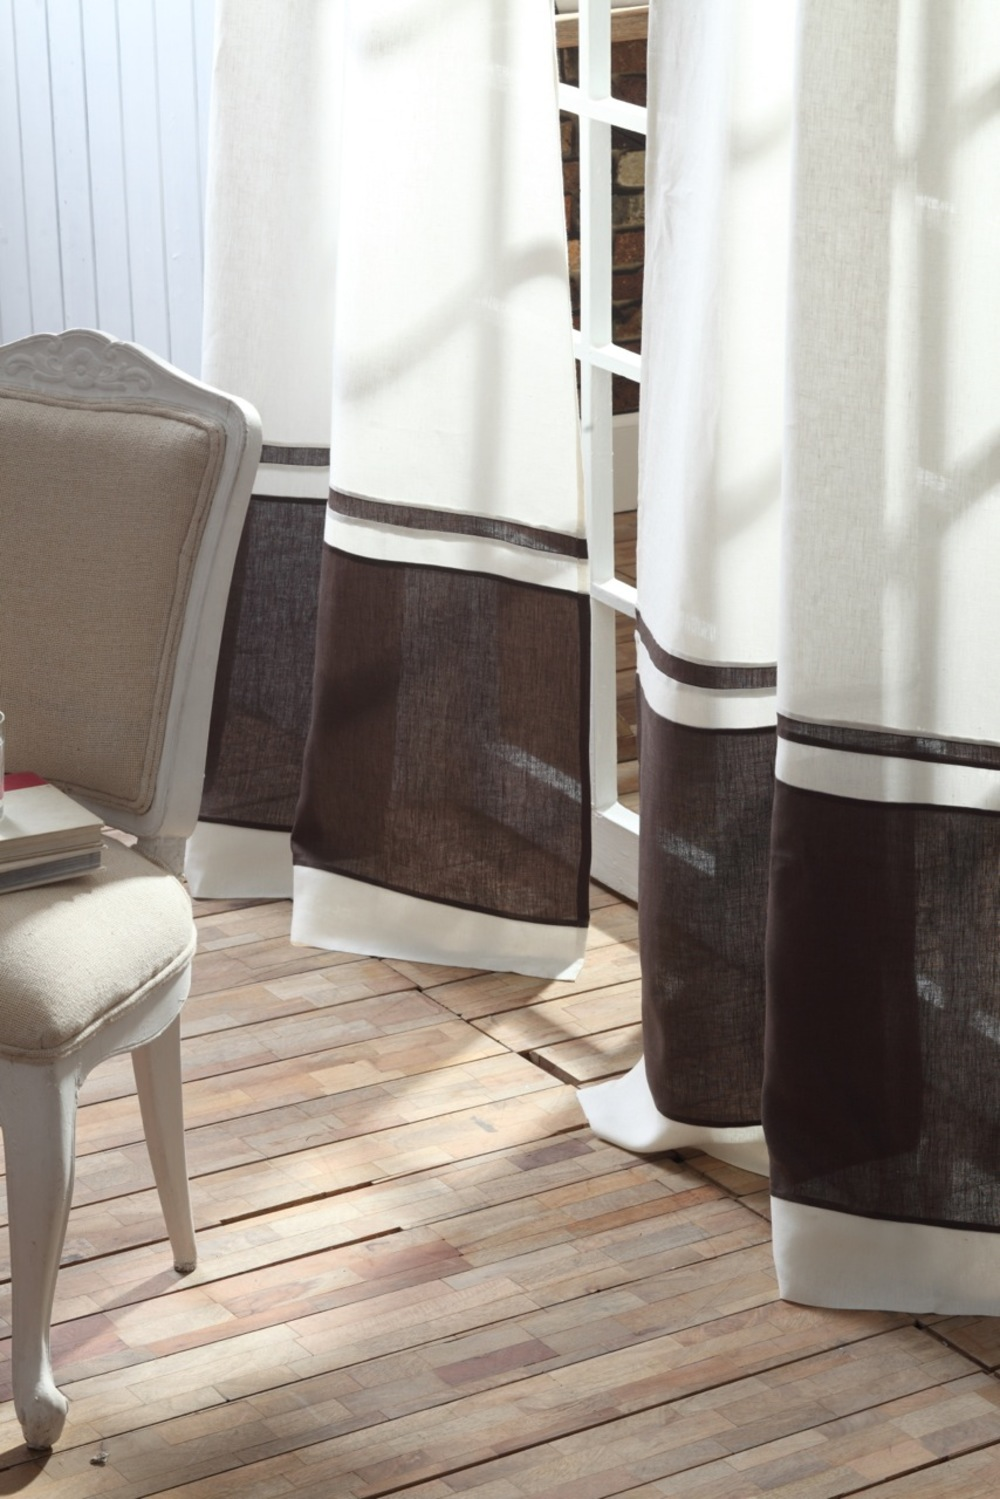 Amity Imports - Orfeo Linen Banded Curtain in Ivory and Charcoal